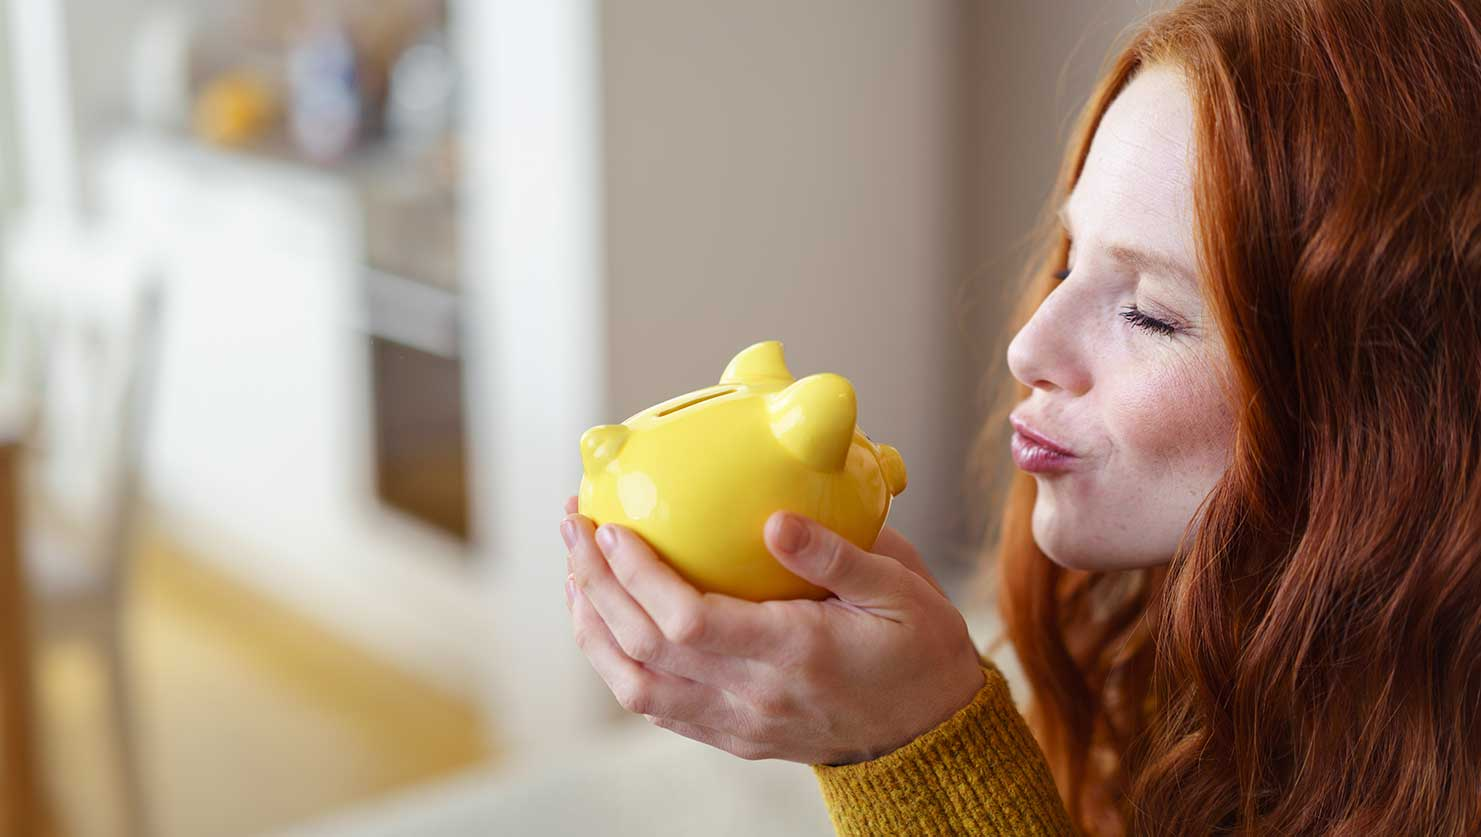 Piggy Bank image for fund management